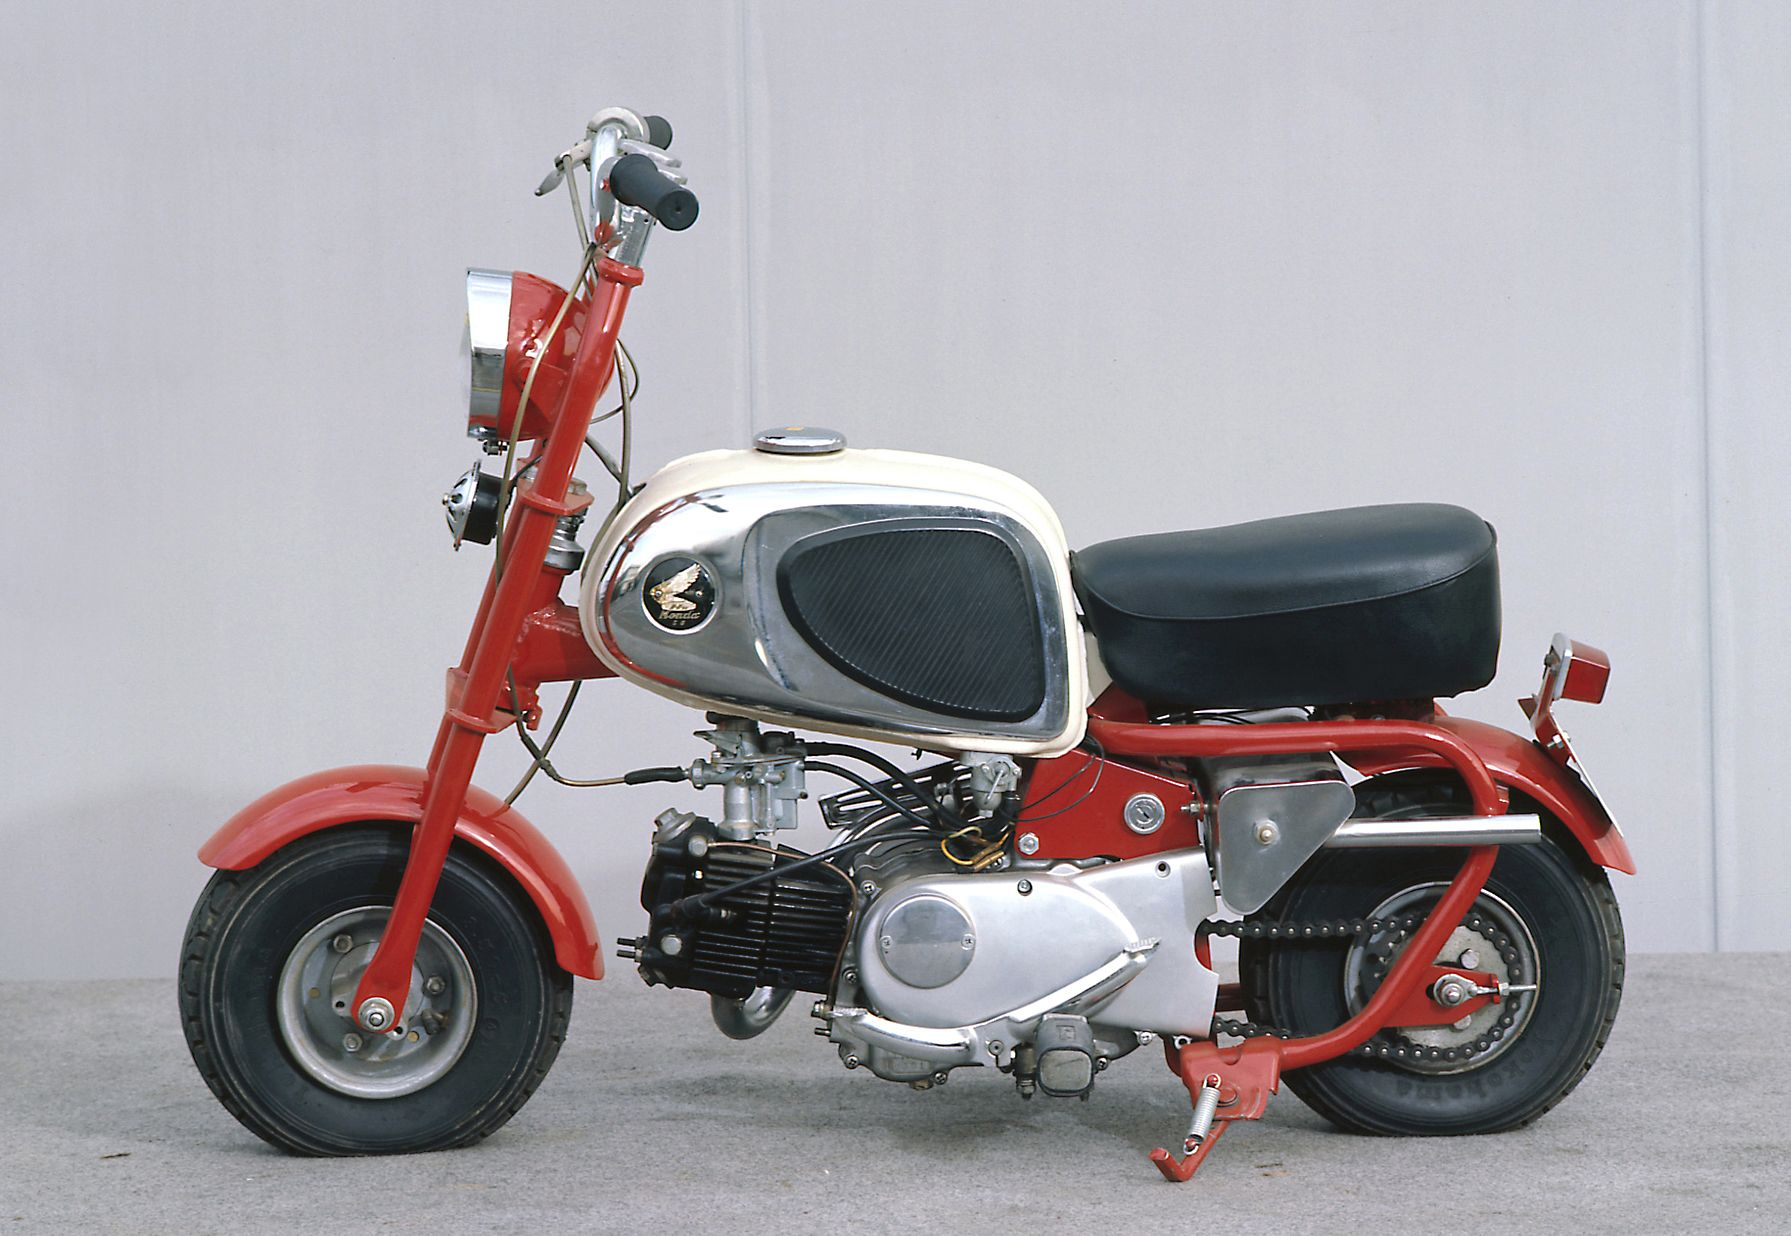 Honda Monkey Makes a Comeback Priced from RM 13,999